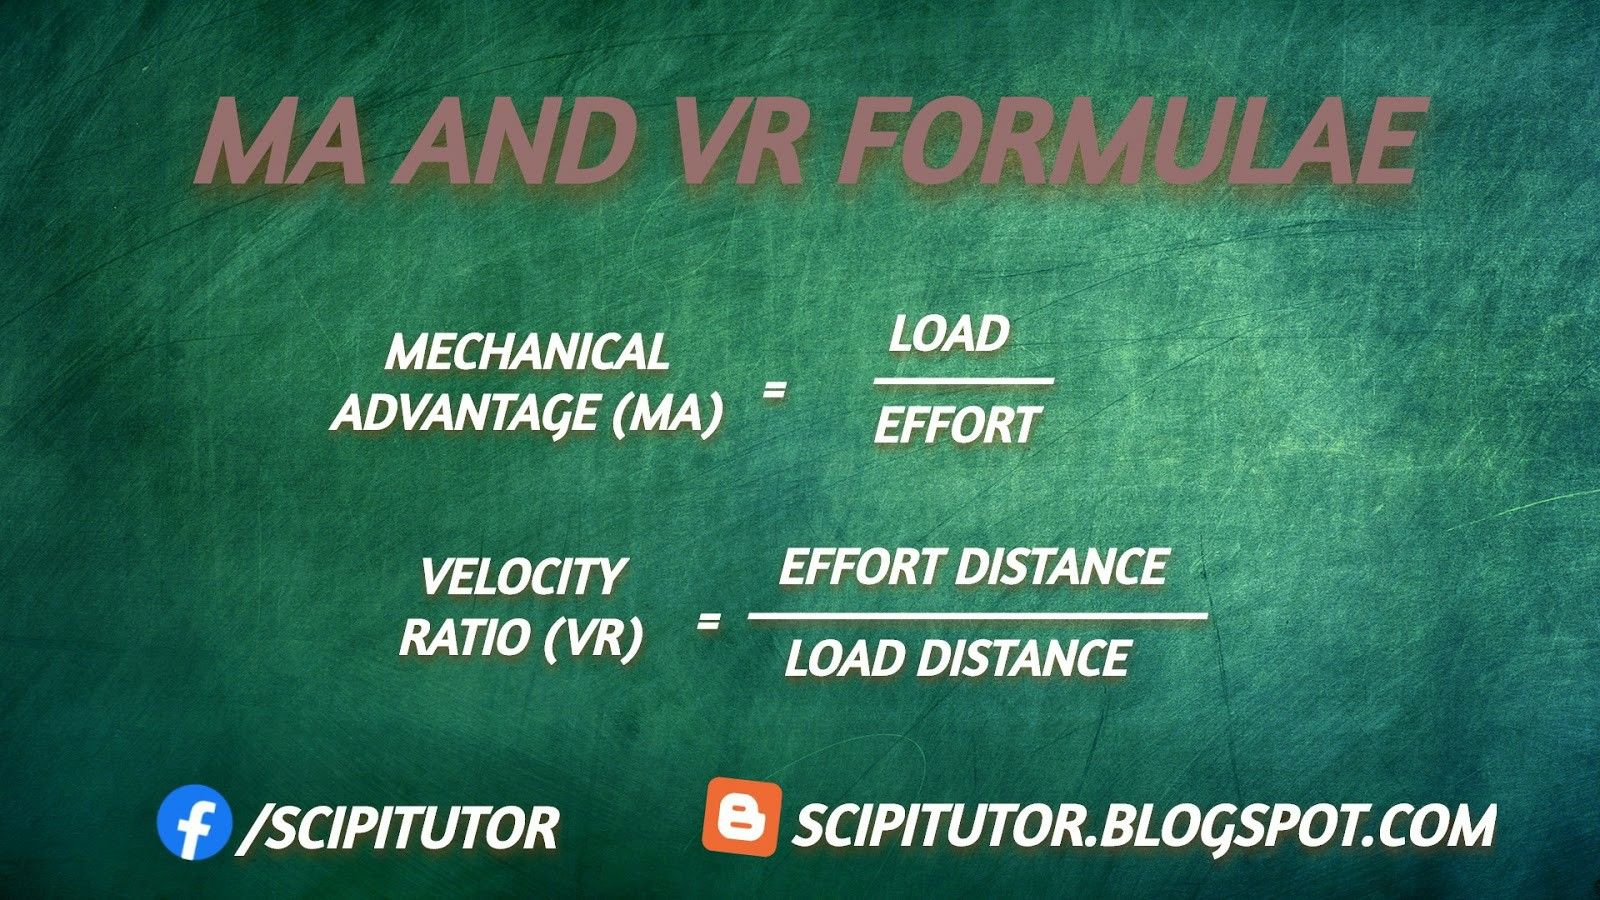 Ma And Vr Formulae In